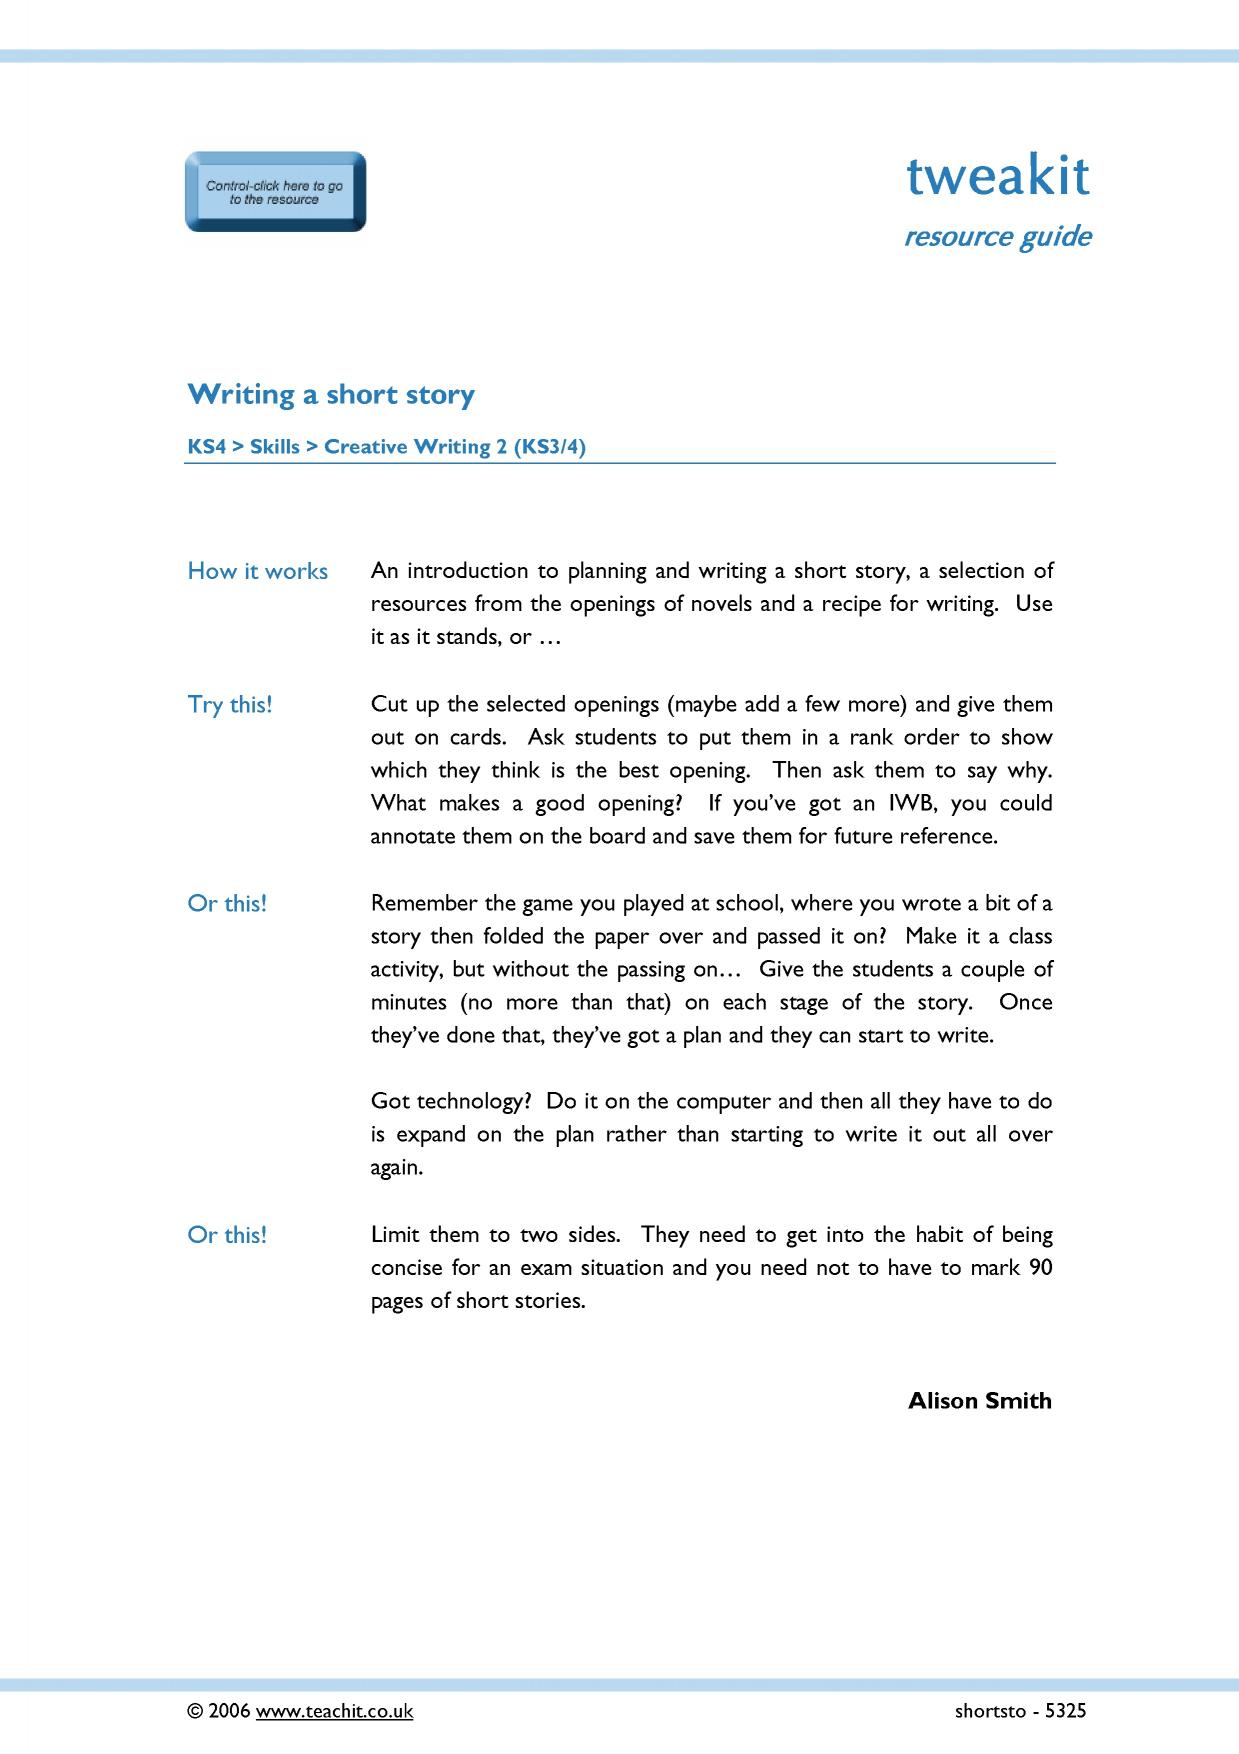 creative writing remembering life Writing prompts about 9/11 help teens reflect on that day and its long-term effects on our world writing and remembering creative writing prompts for teens.